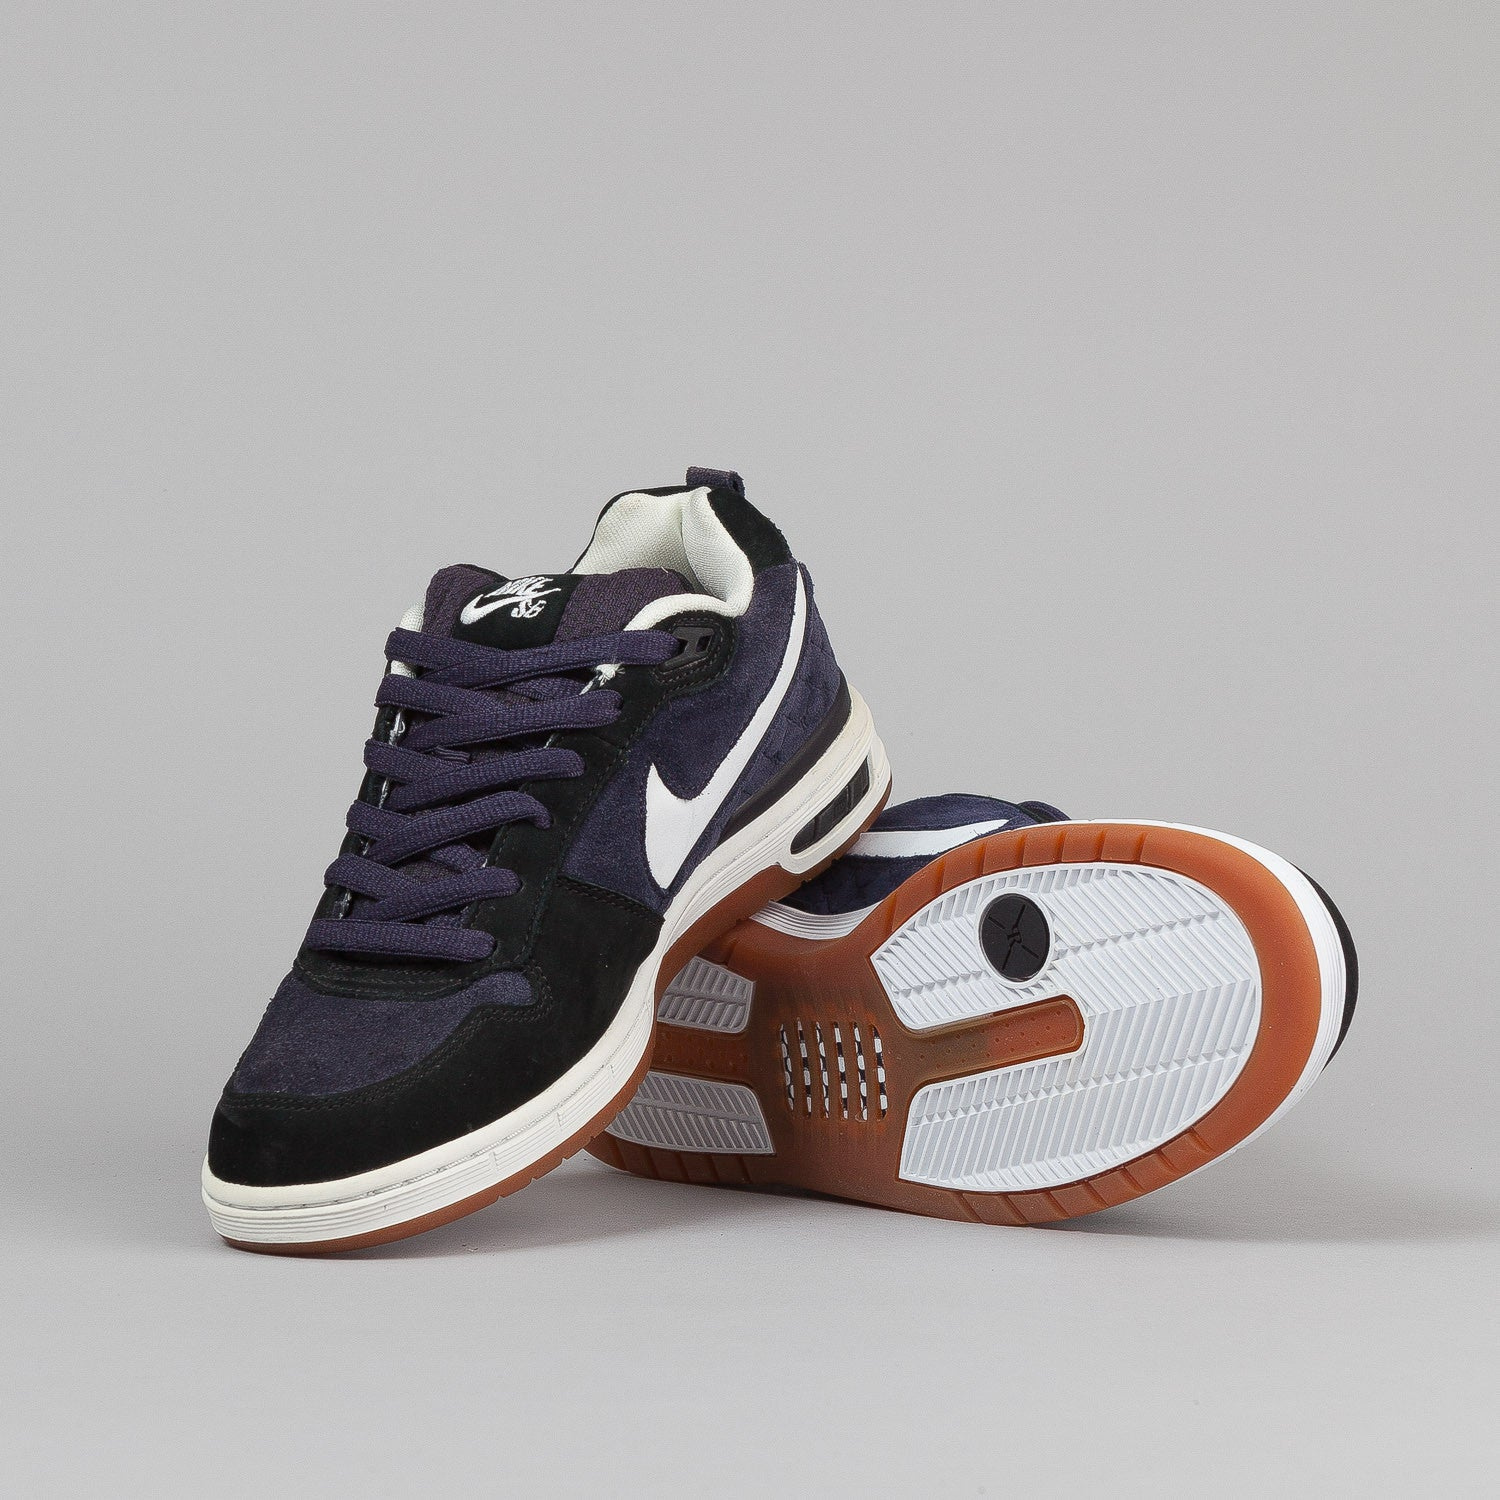 Nike SB Paul Rodriguez Shoes - Cave Purple / White / Black